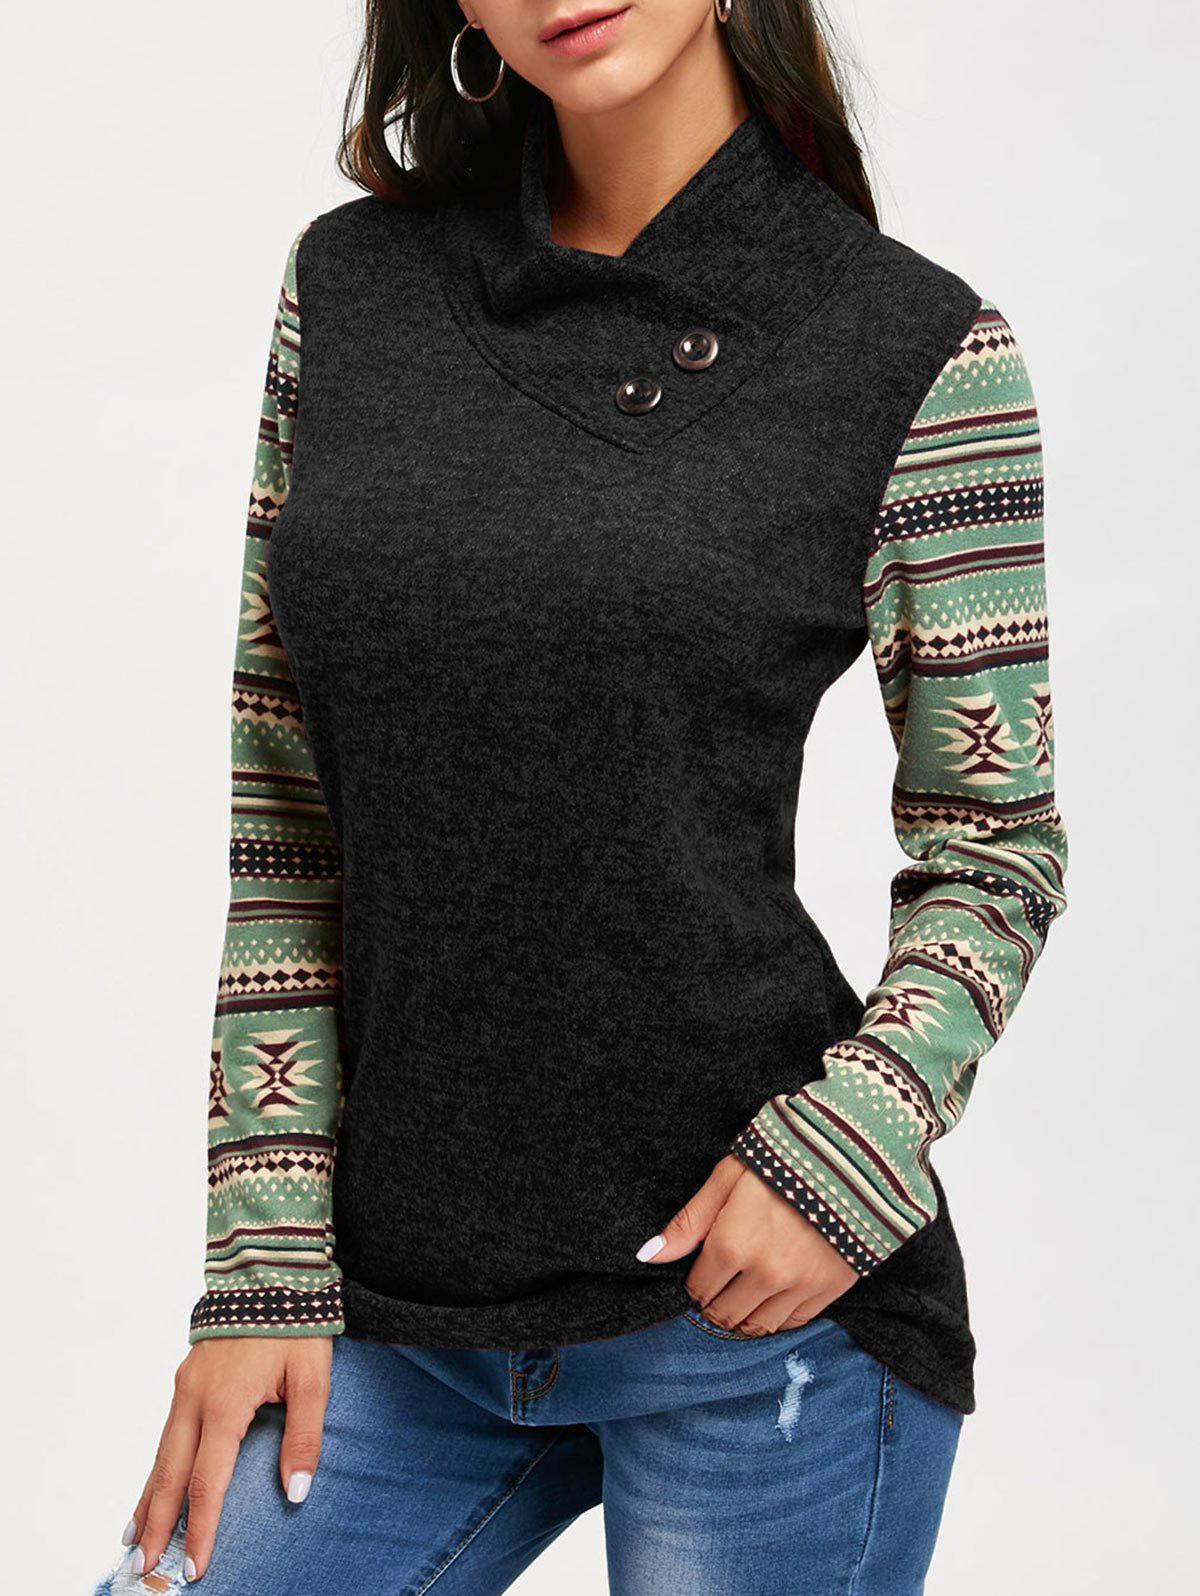 Ethnic Print Long Sleeve Heap Collar TopWOMEN<br><br>Size: L; Color: BLACK; Material: Polyester; Shirt Length: Regular; Sleeve Length: Full; Collar: Heaps Collar; Style: Casual; Embellishment: Button; Pattern Type: Print; Season: Fall,Spring; Weight: 0.3500kg; Package Contents: 1 x Top;